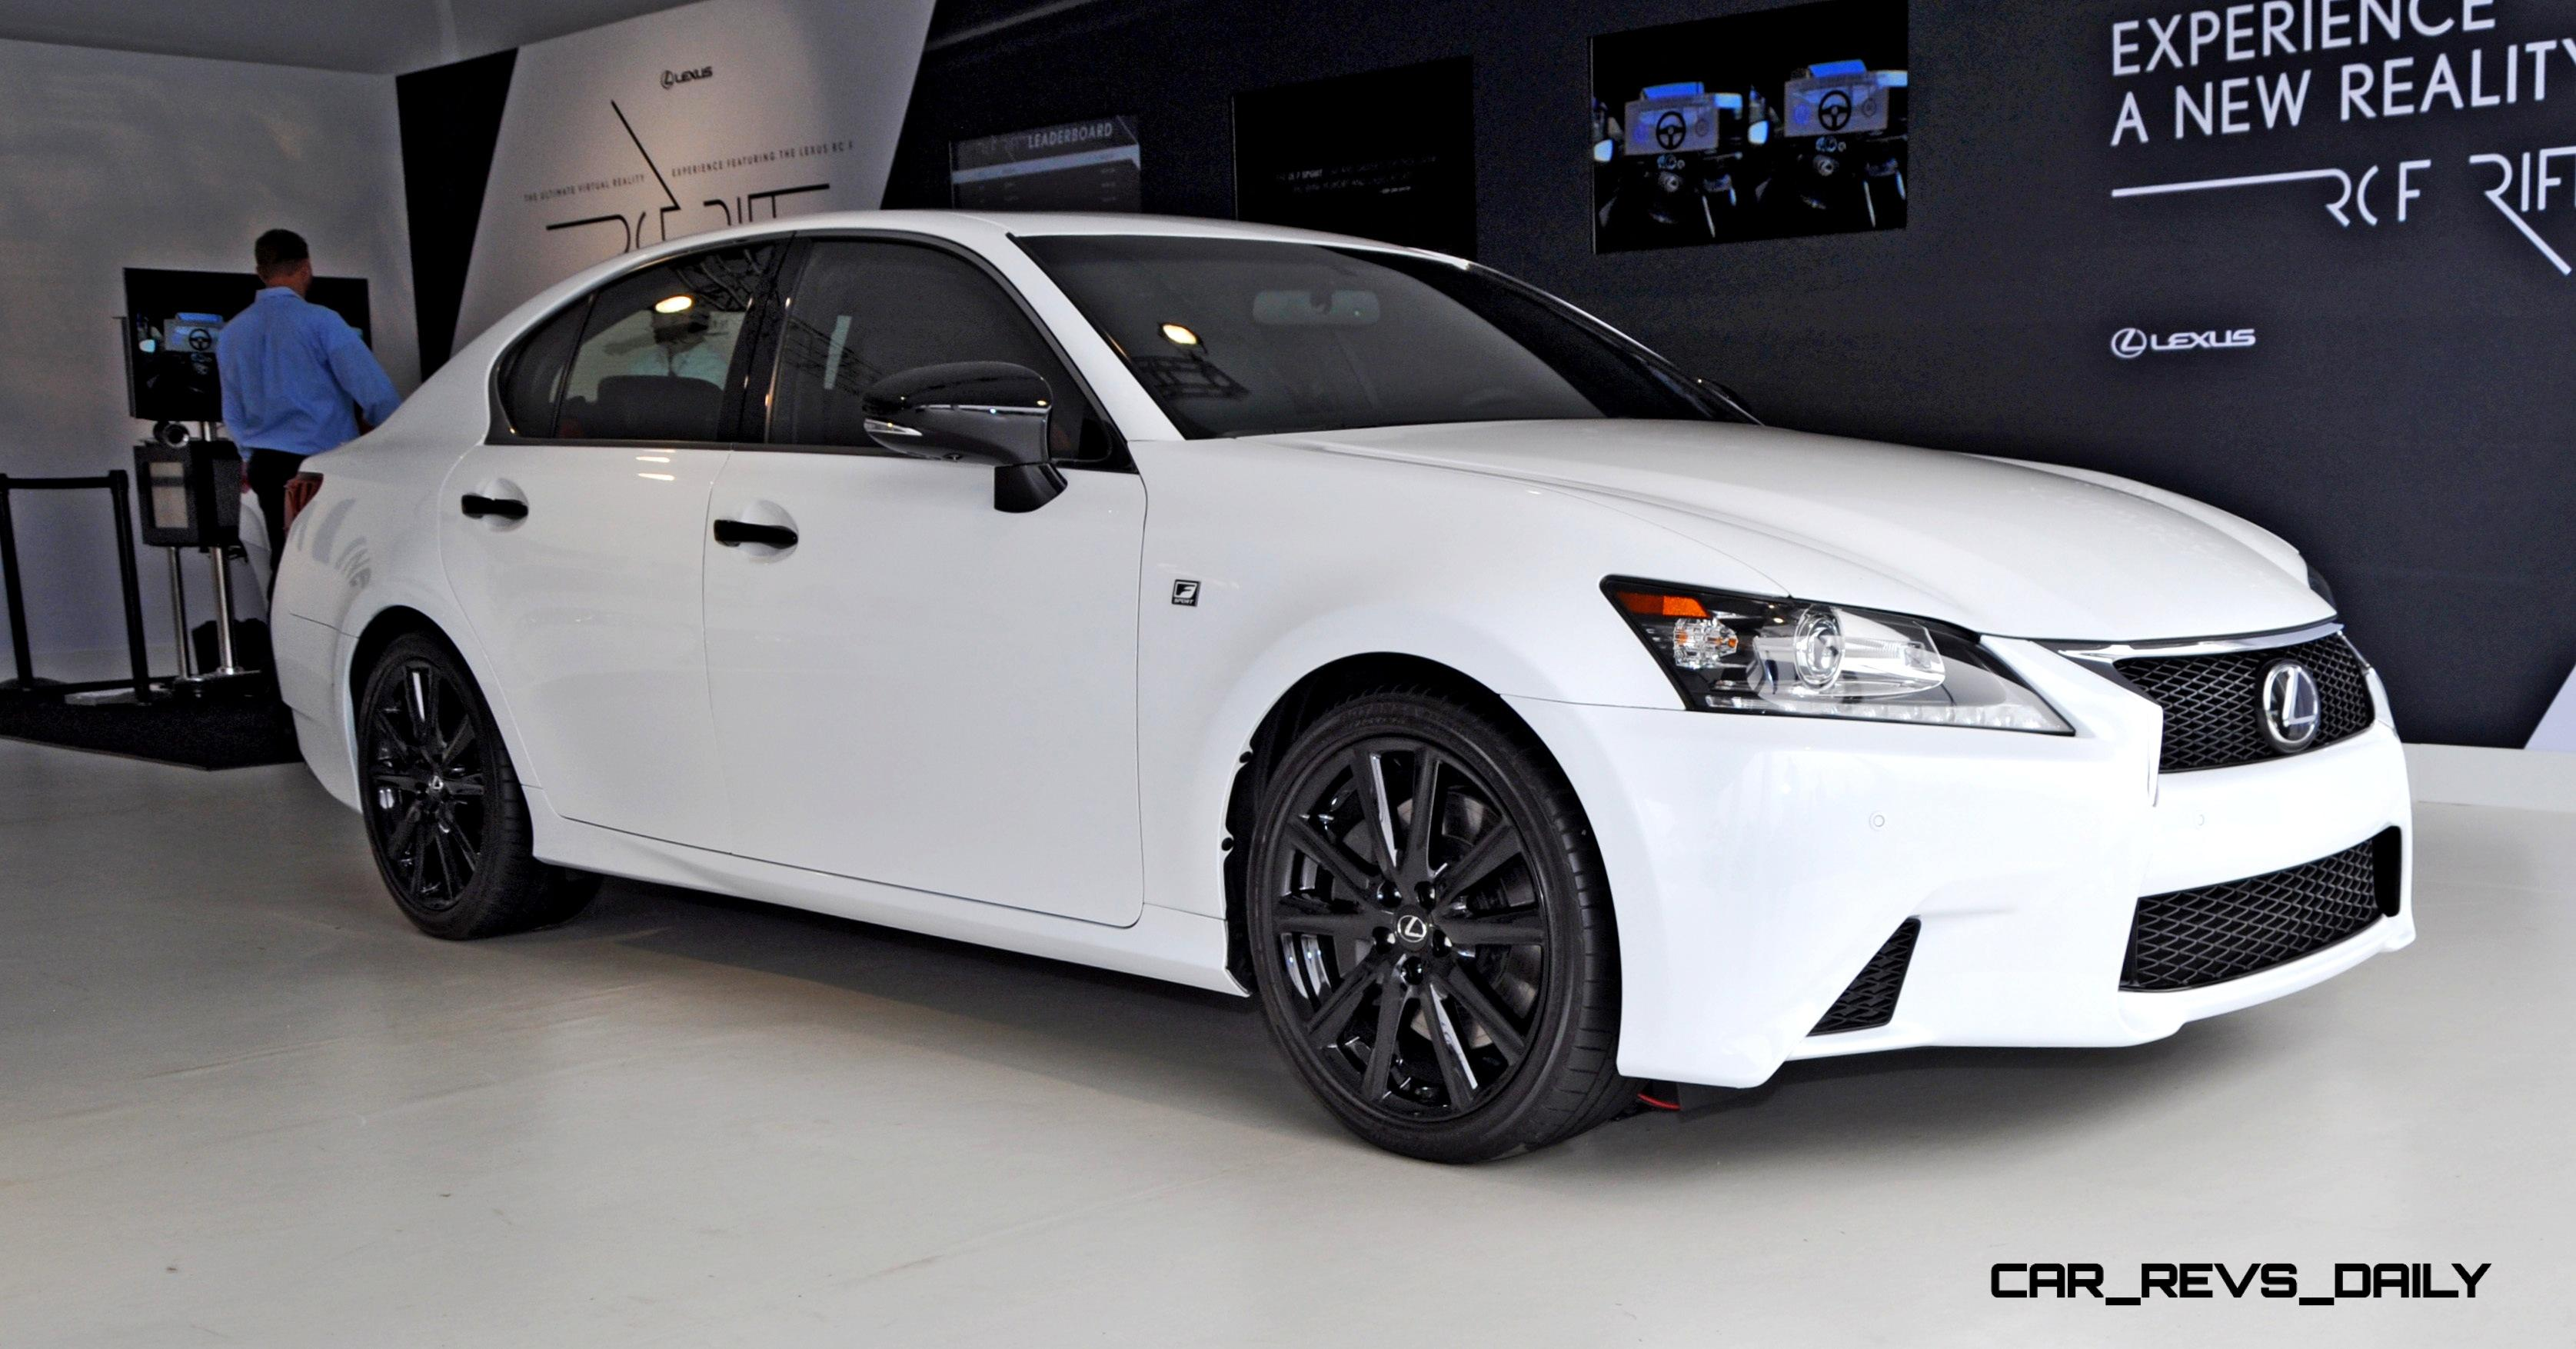 2015 lexus gs350 crafted line aces style mood in bright white over gloss black 37 new photos. Black Bedroom Furniture Sets. Home Design Ideas